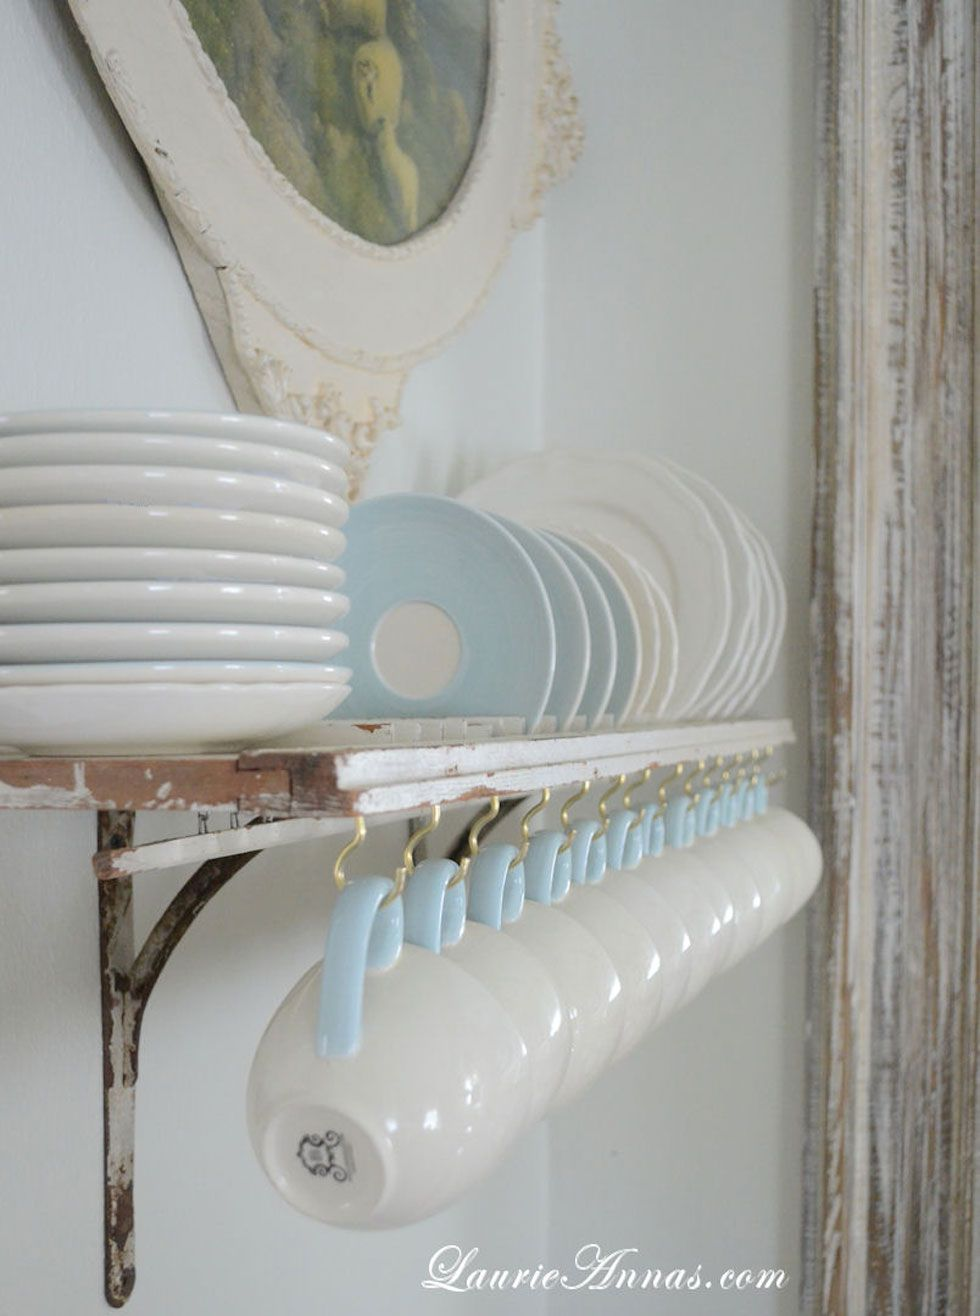 11 Colorful Ways to Repurpose Old Shutters & 11 Colorful Ways to Repurpose Old Shutters | Cup hooks Organizing ...